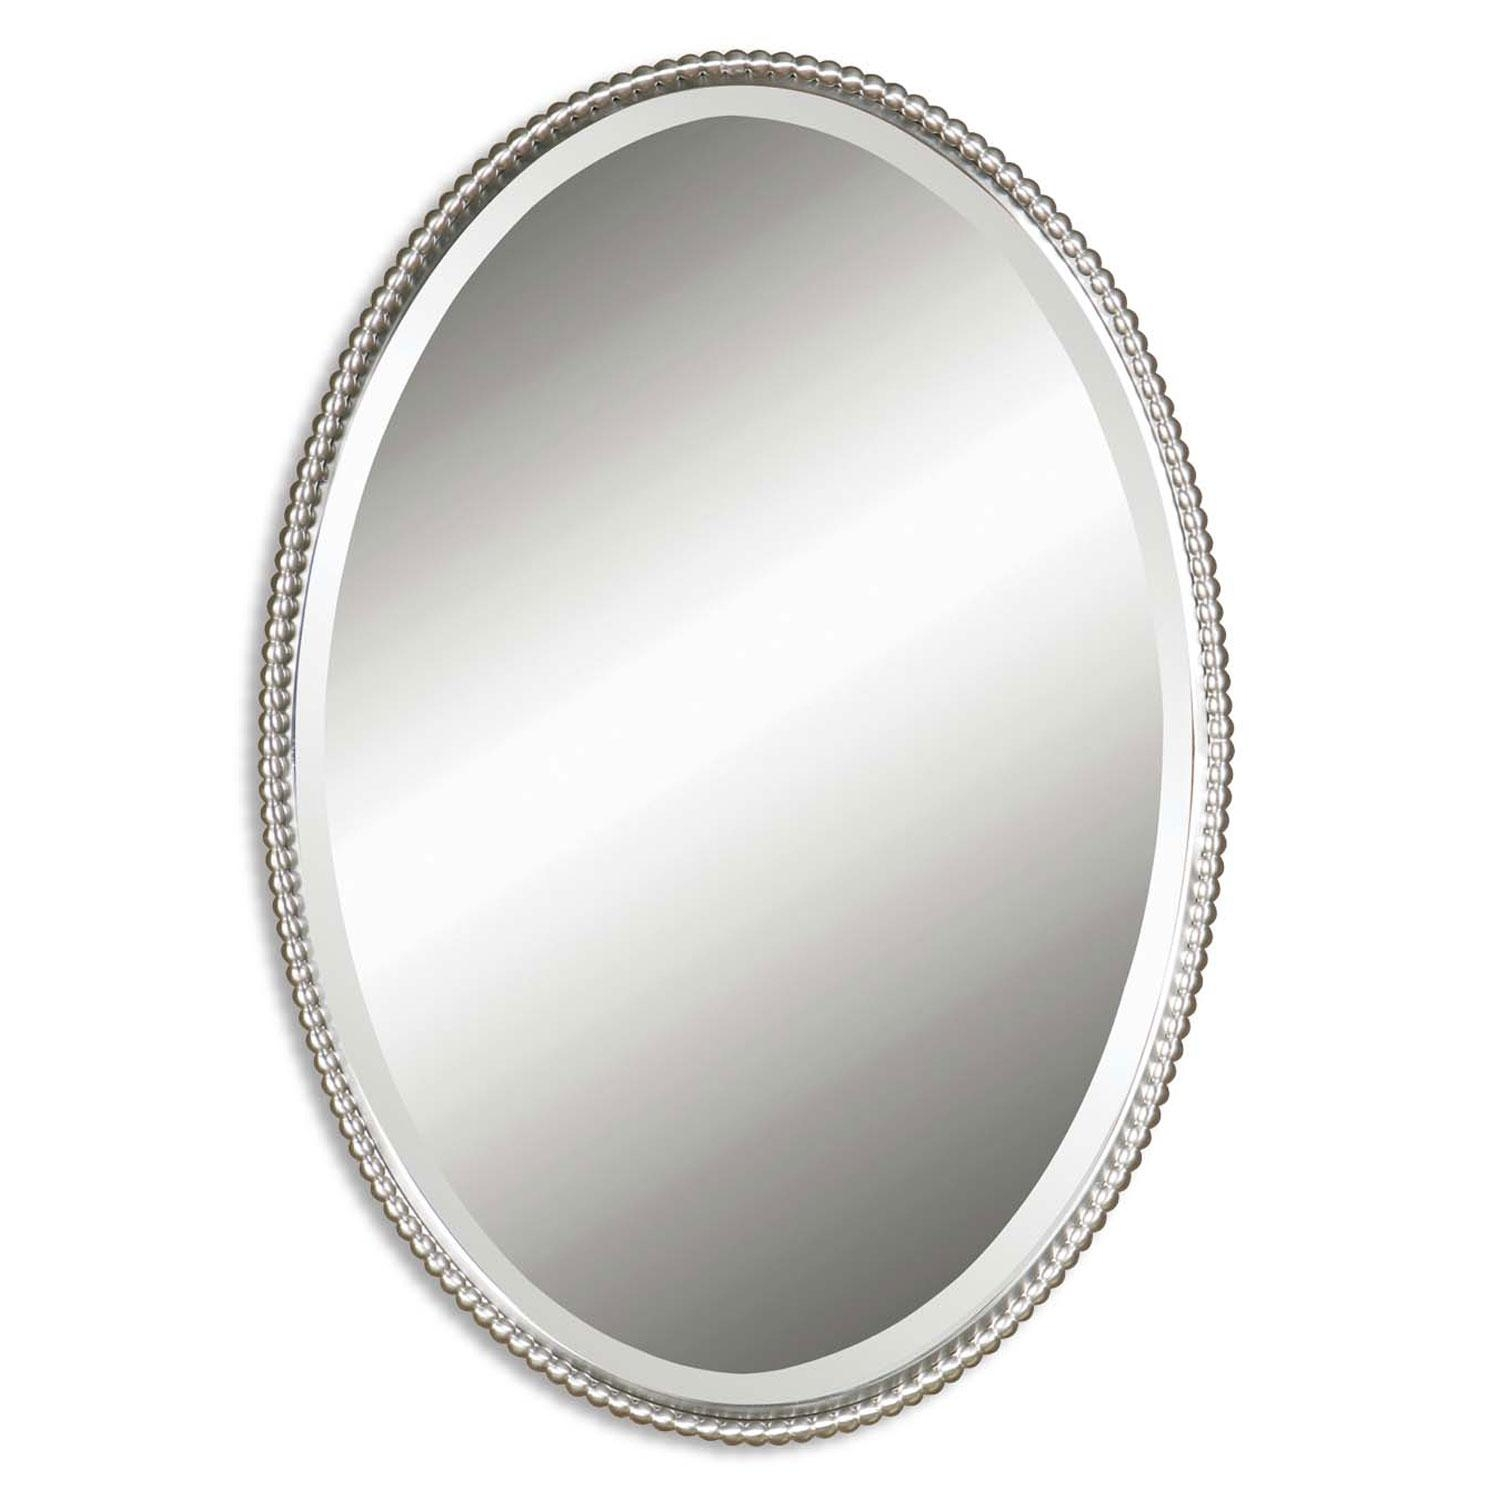 Transitional Mirrors | Bellacor In Bevelled Oval Mirror (Image 17 of 20)